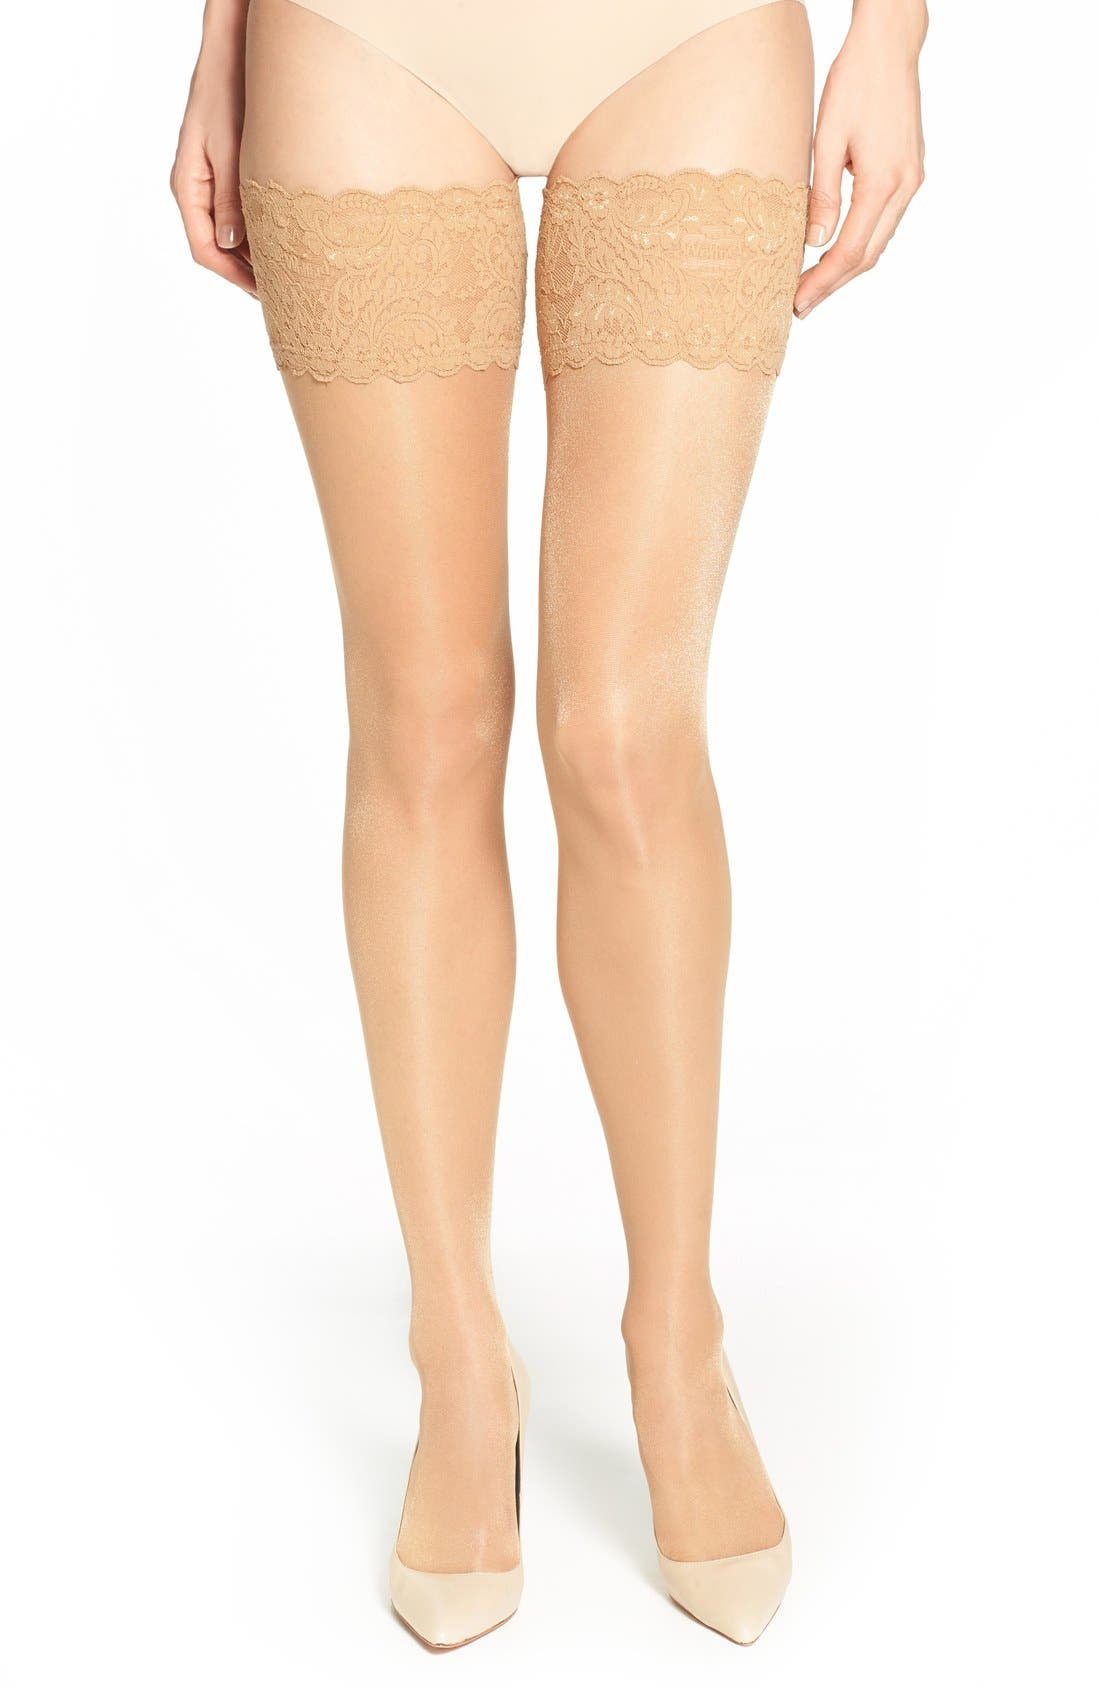 Satin Touch 20 Stay-Up Stockings,                         Main,                         color, Gobi